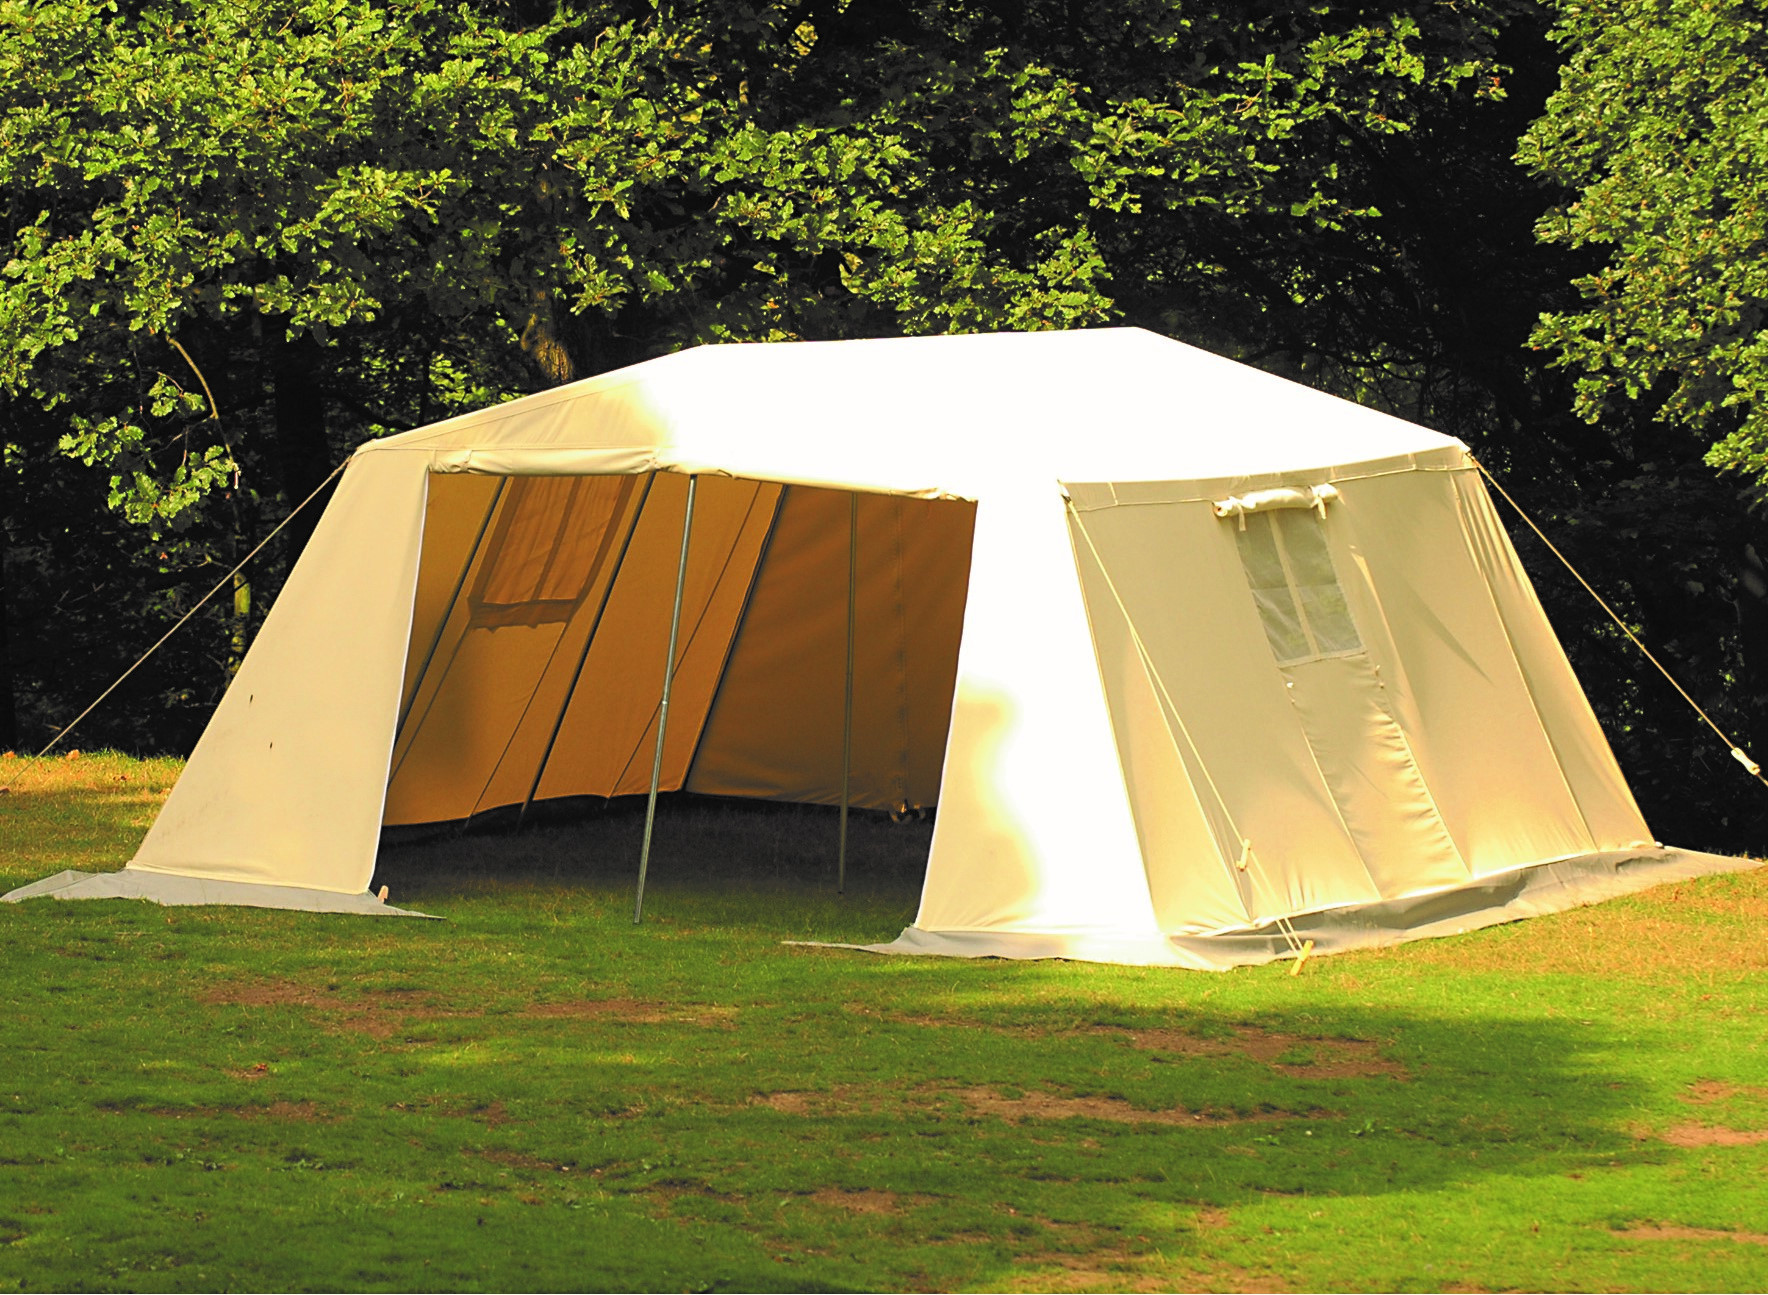 & BCT Mess Tent - Large £1160.00